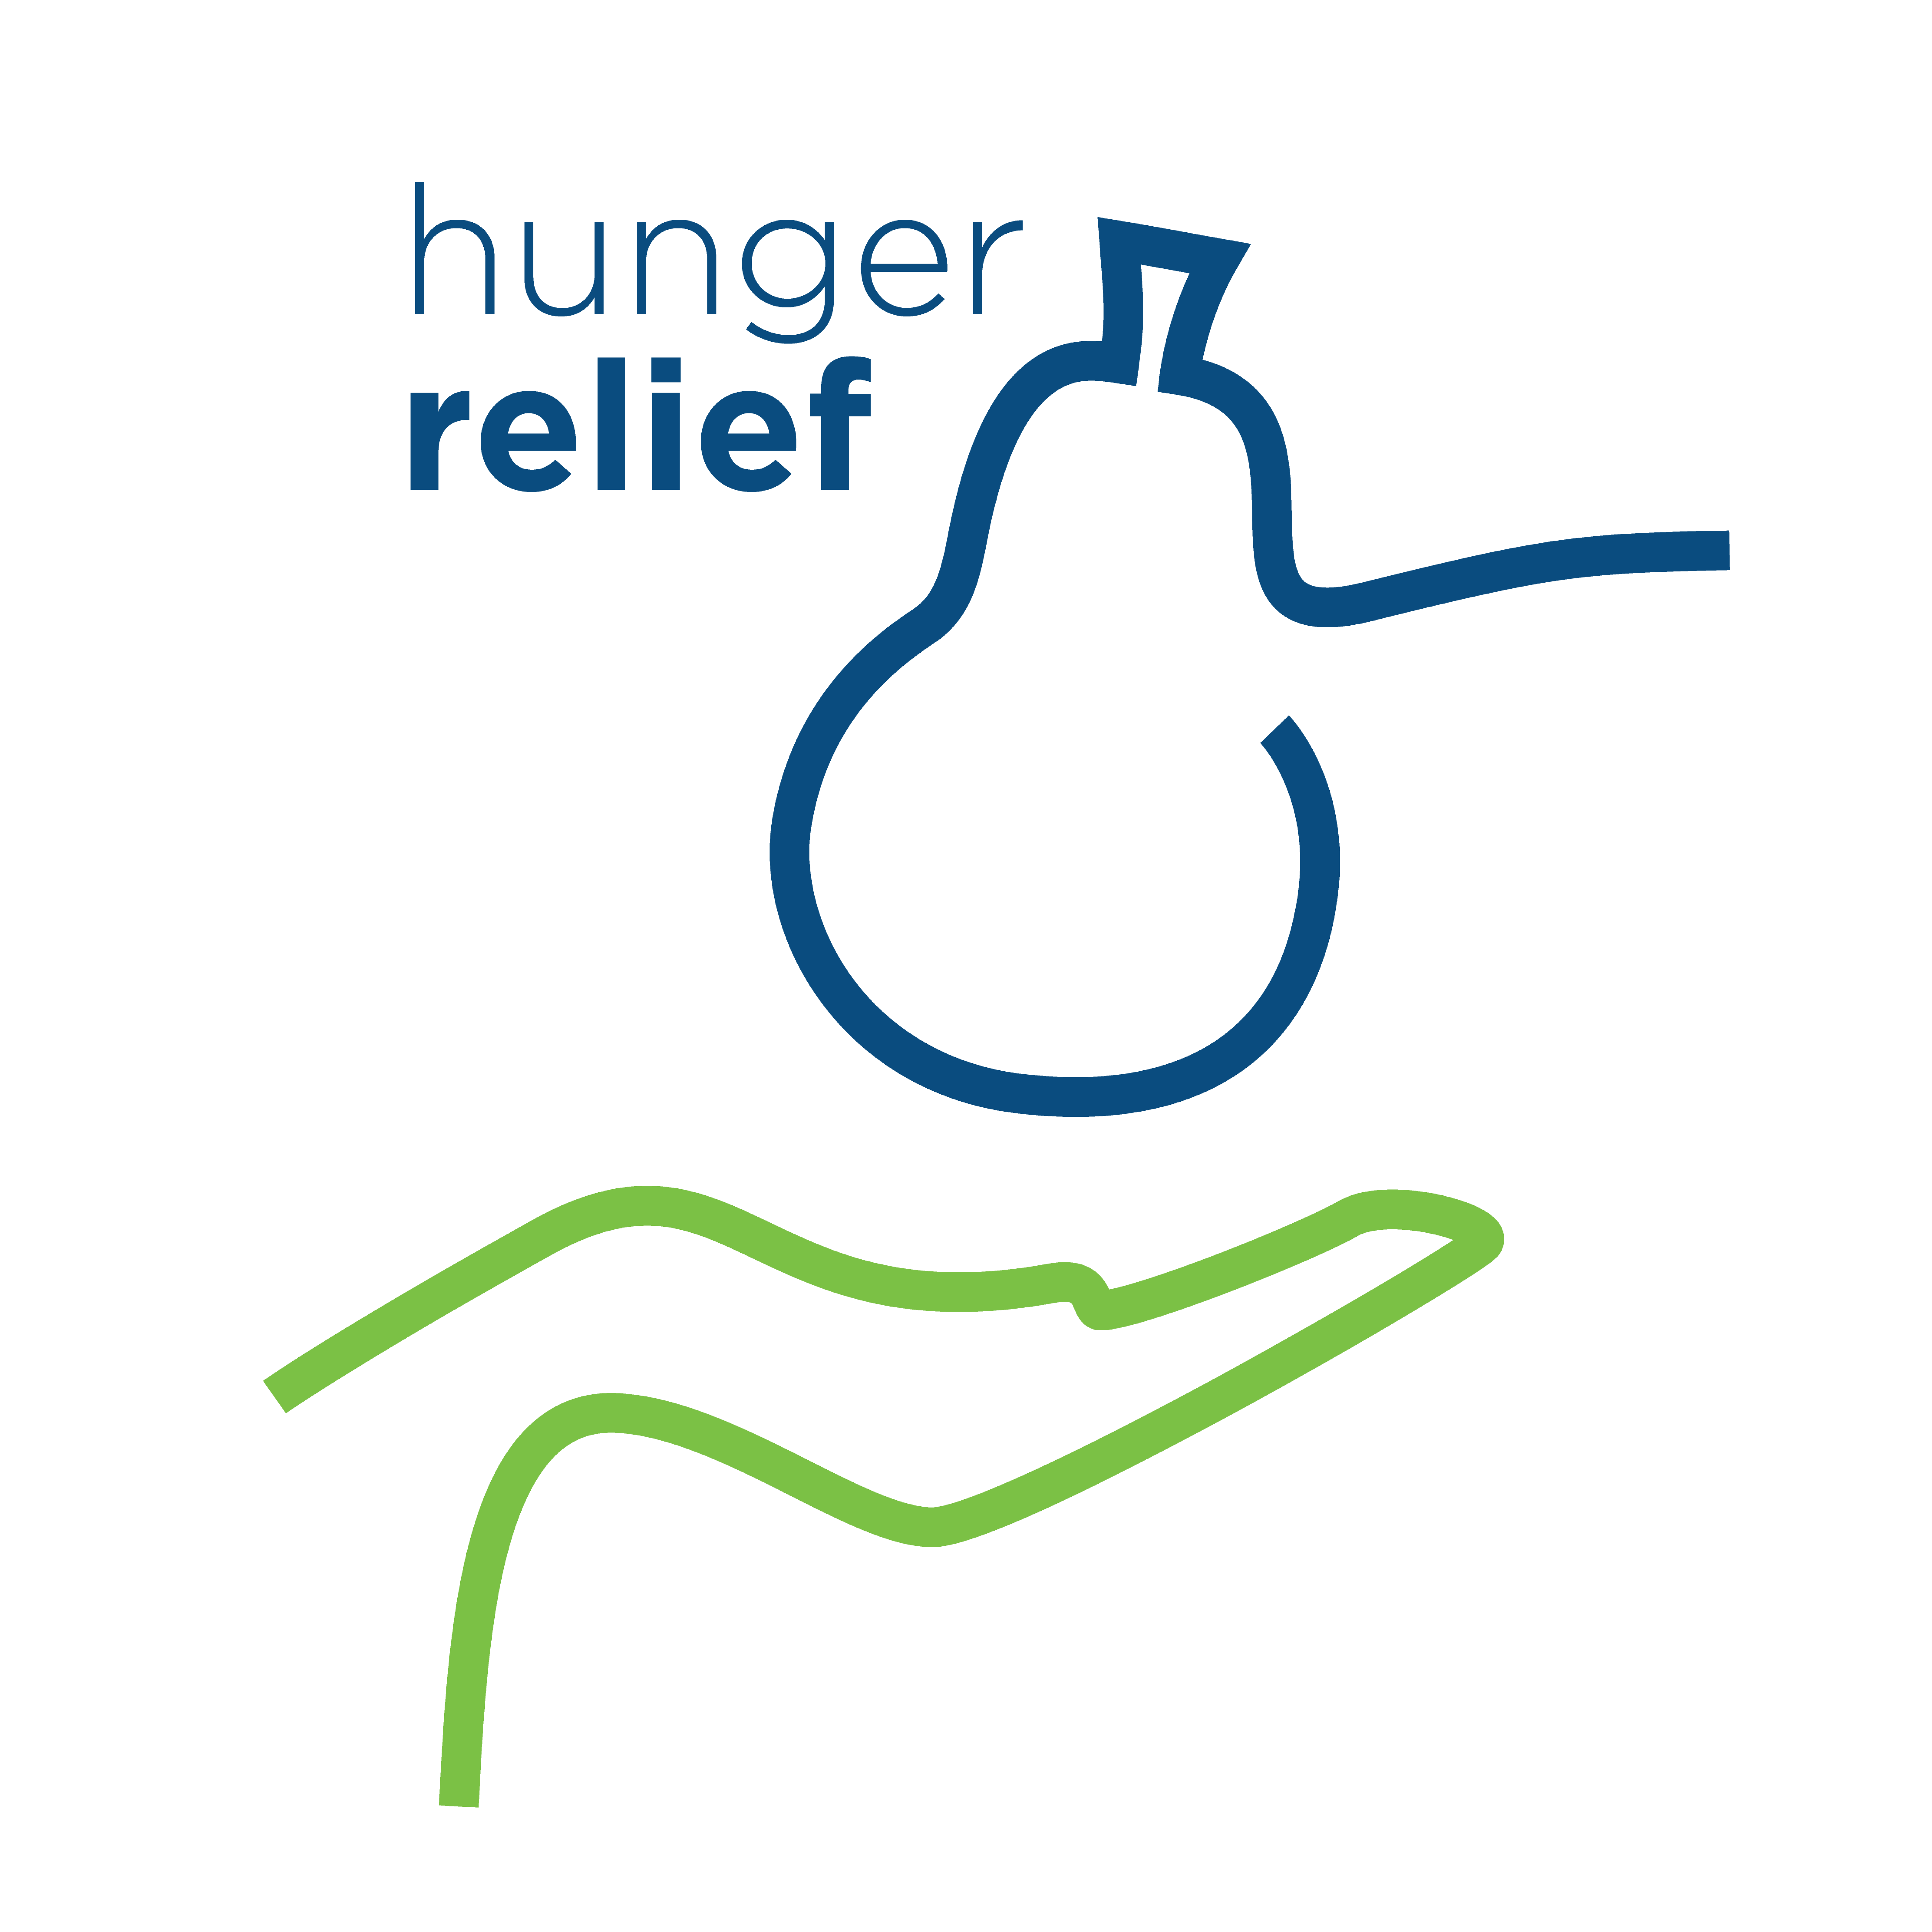 Hunger relief logo